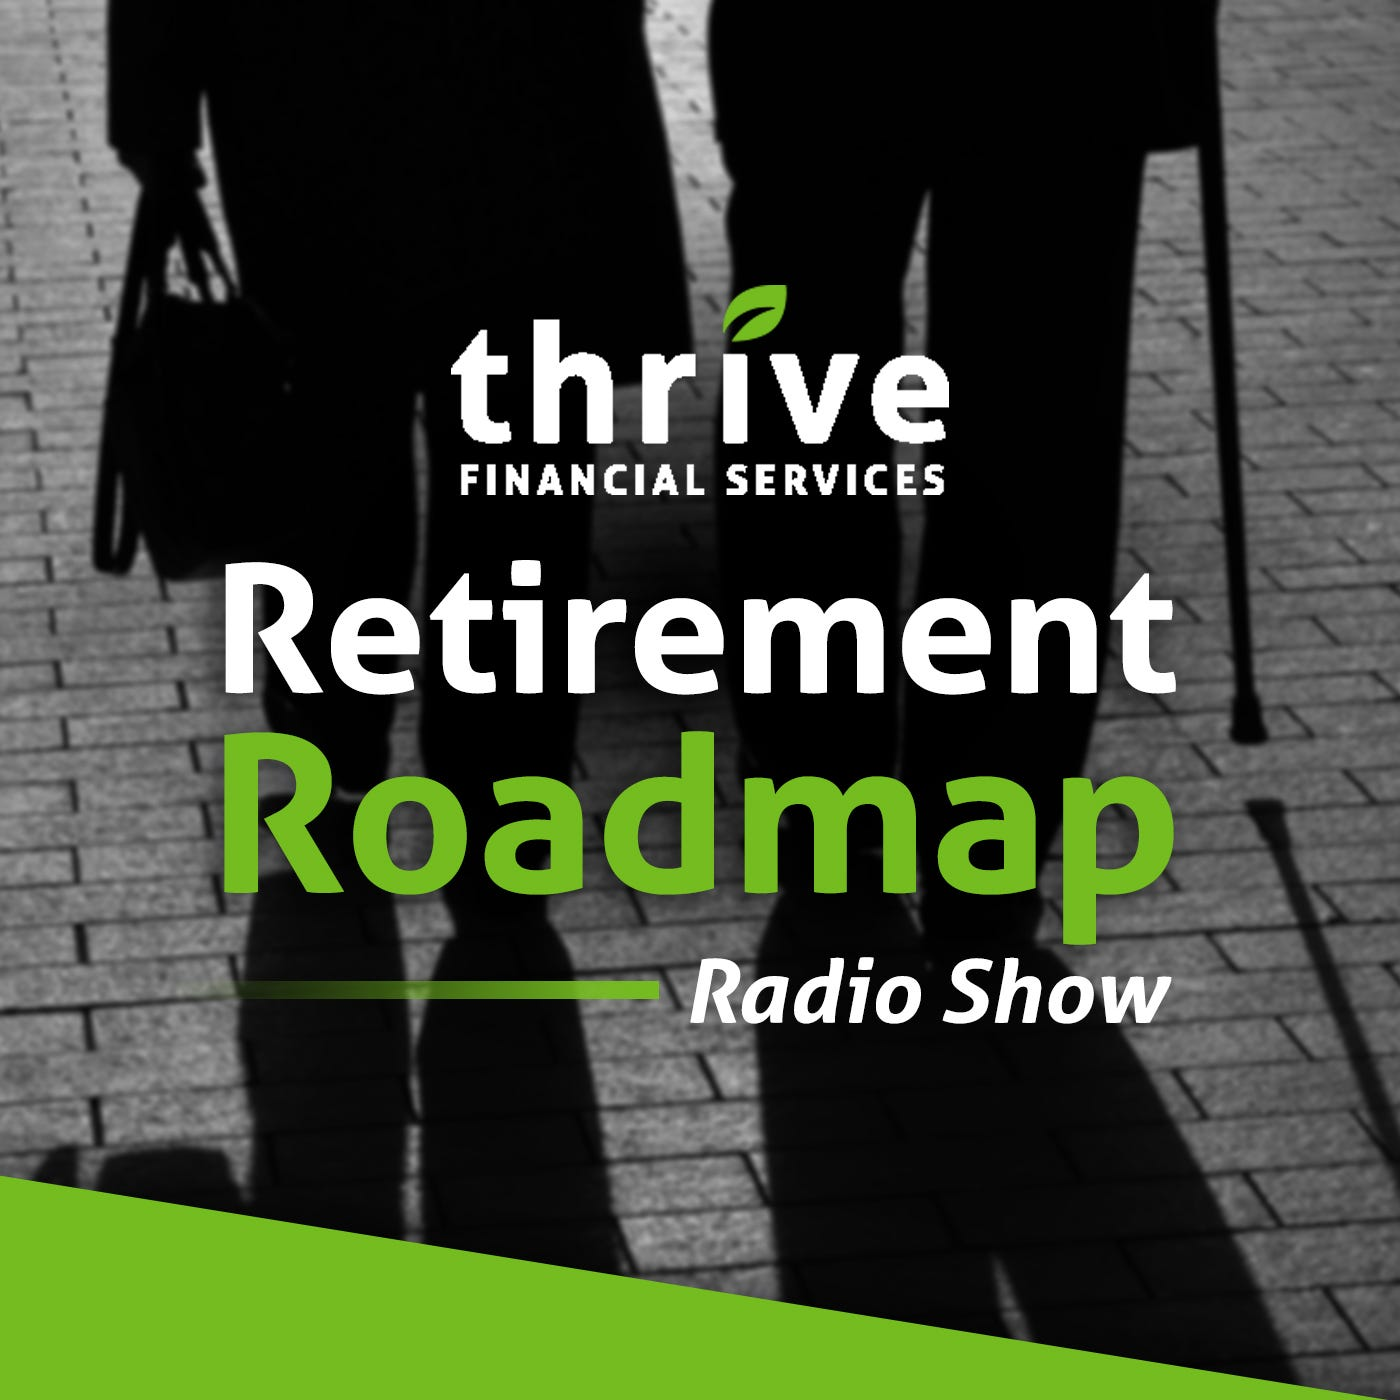 Thrive Financial Services Retirement Roadmap